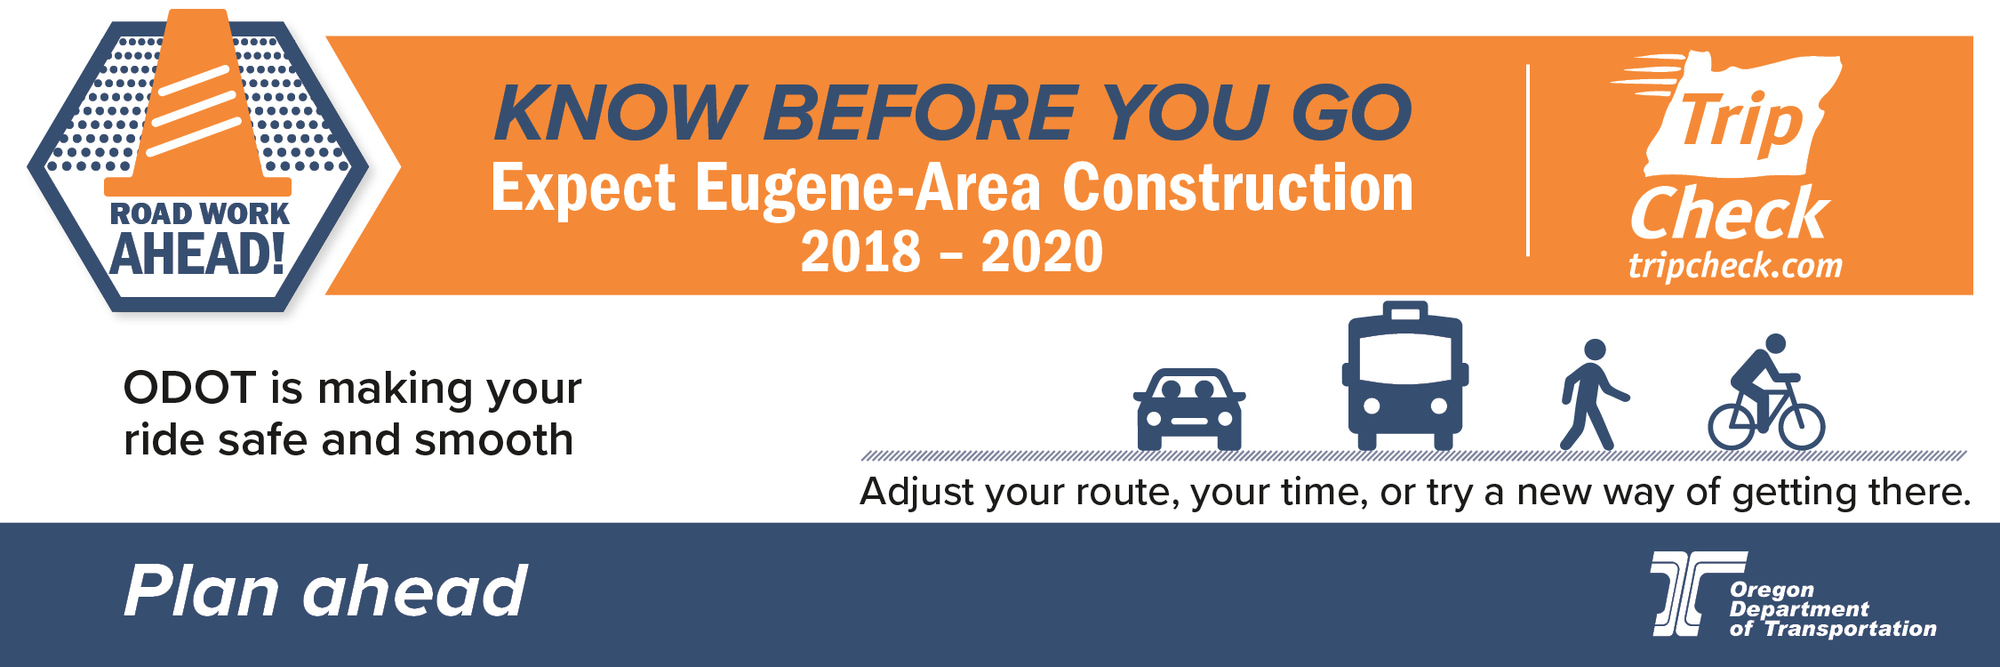 Eugene area construction header